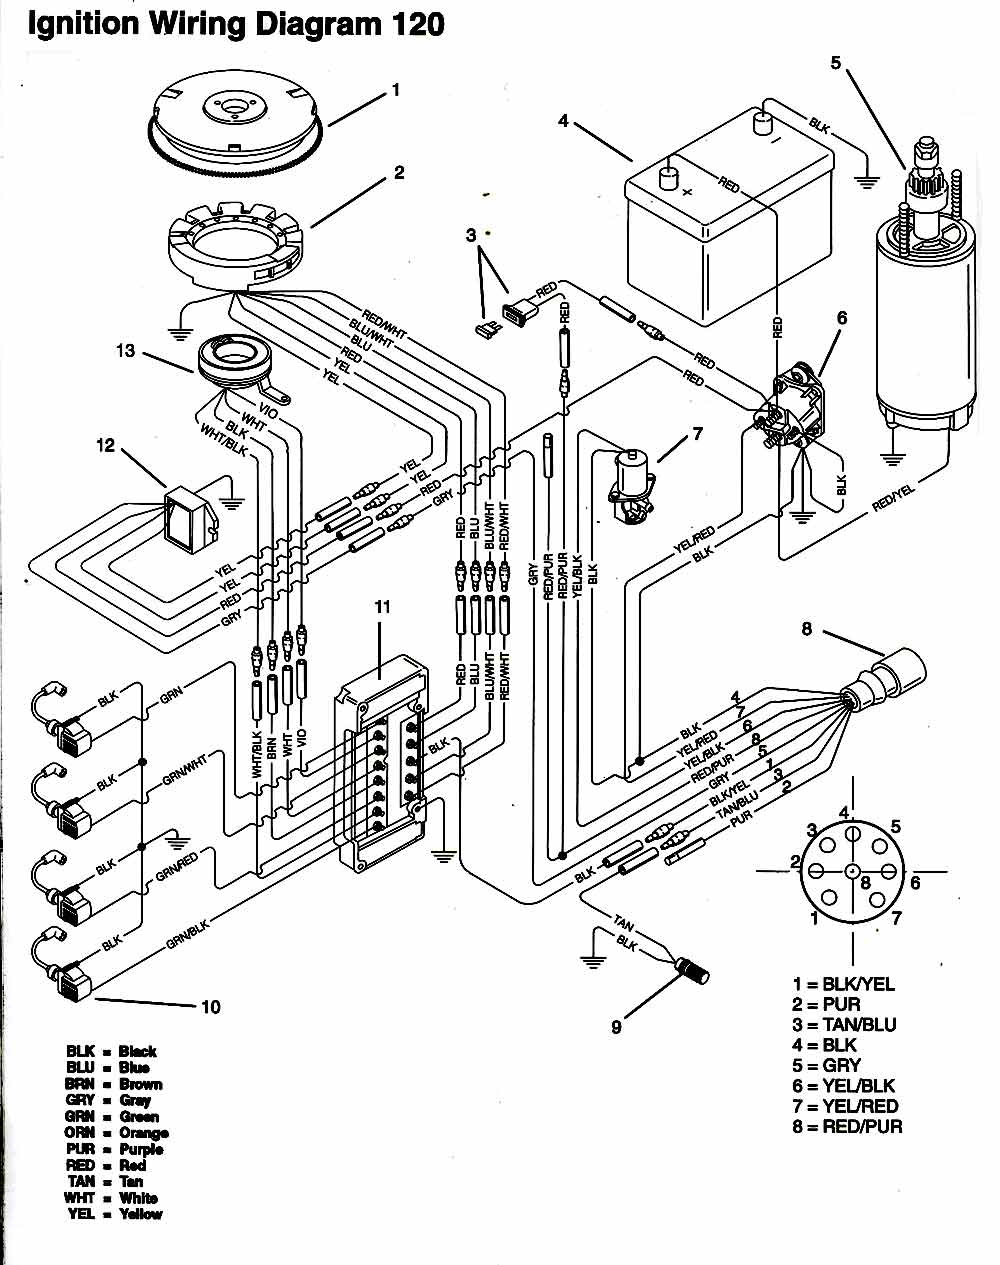 125 force motor wiring diagram